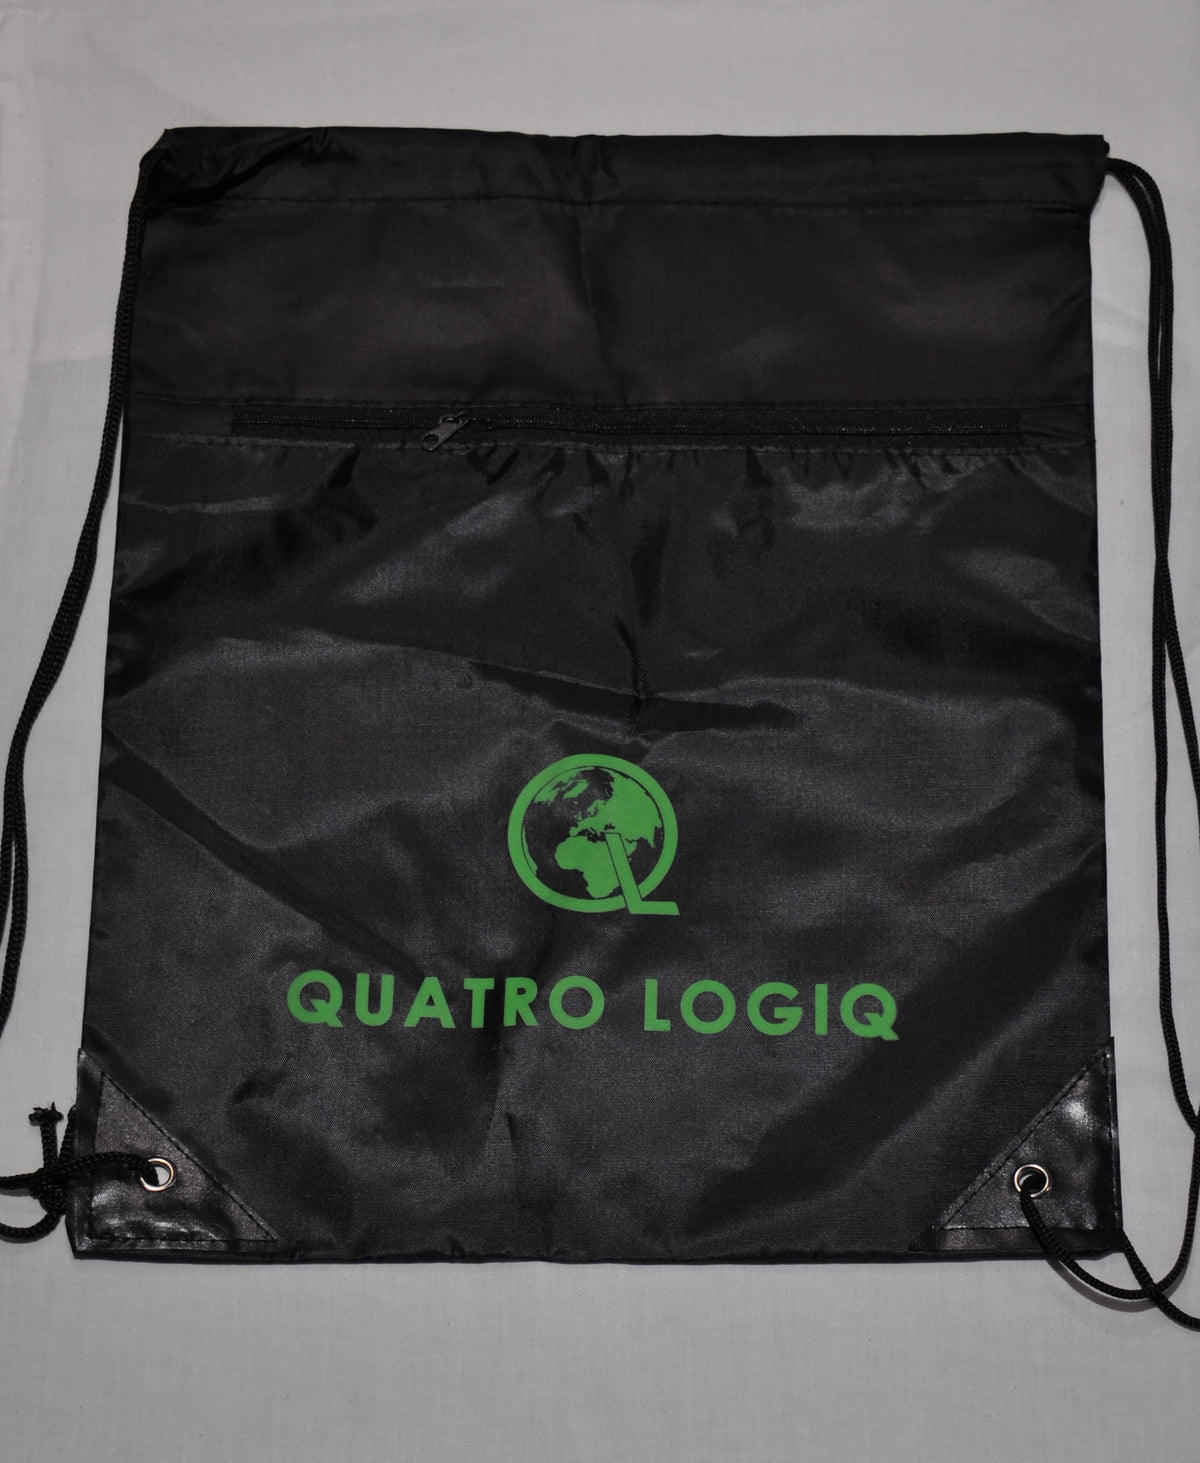 light weight string bag that fits in you pocket and can be pulled out and used to carry just about anything that fits